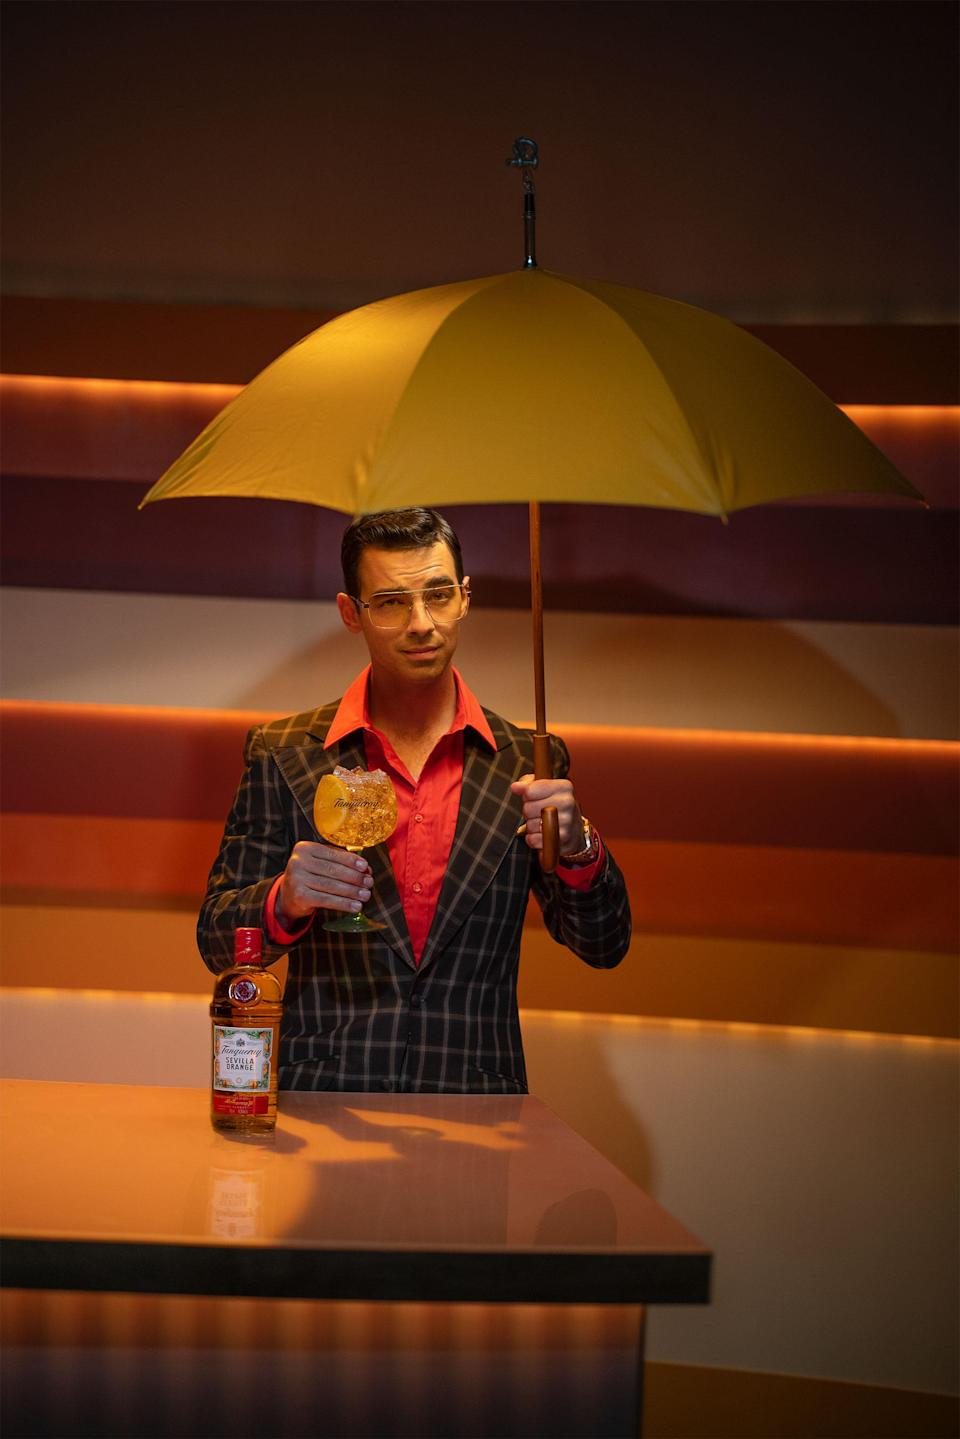 Tanqueray teamed up with Joe Jonas to launch 'Today's Forecast: Sunshine in a Glass,' a new content series introducing Tanqueray Sevilla Orange nationally. / Photo Credit: Atiba Jefferson